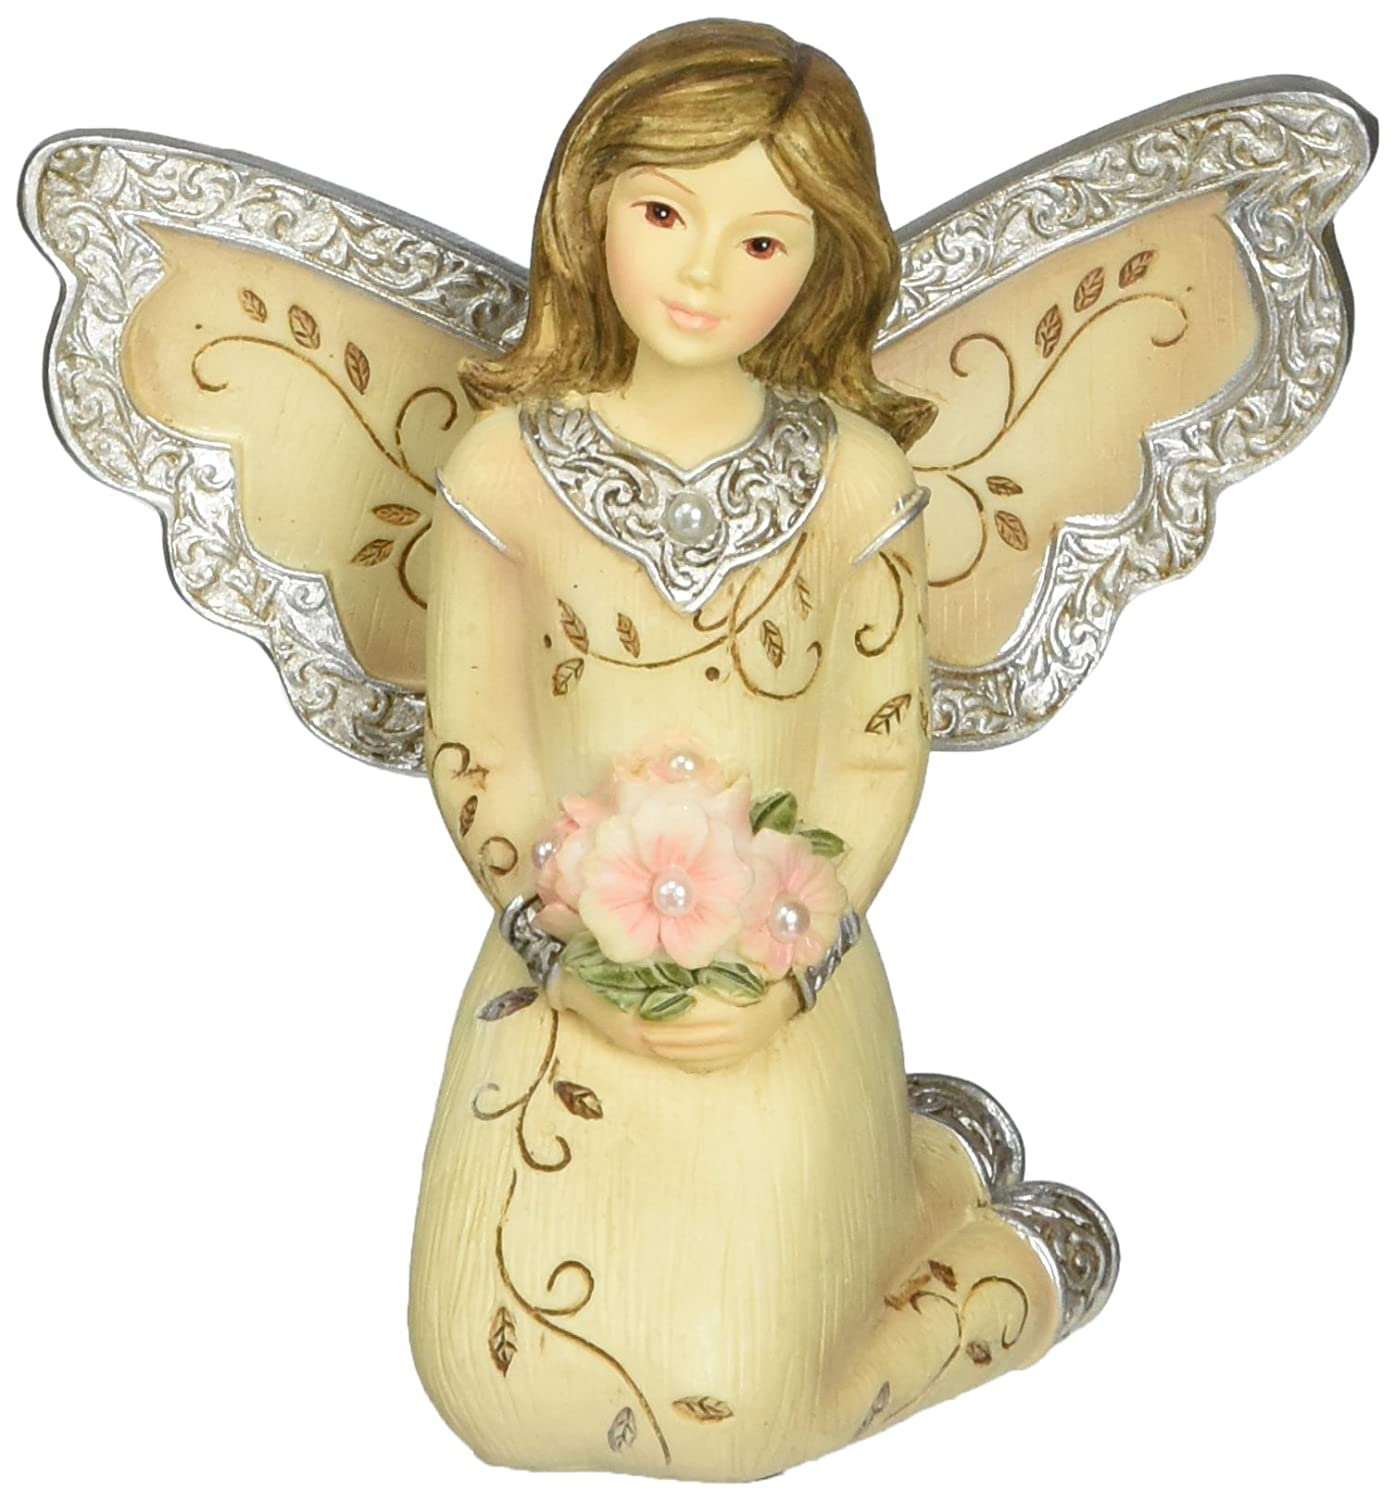 Elements June Monthly Angel Figurine, Includes Pearl Birthstone, 3-Inch